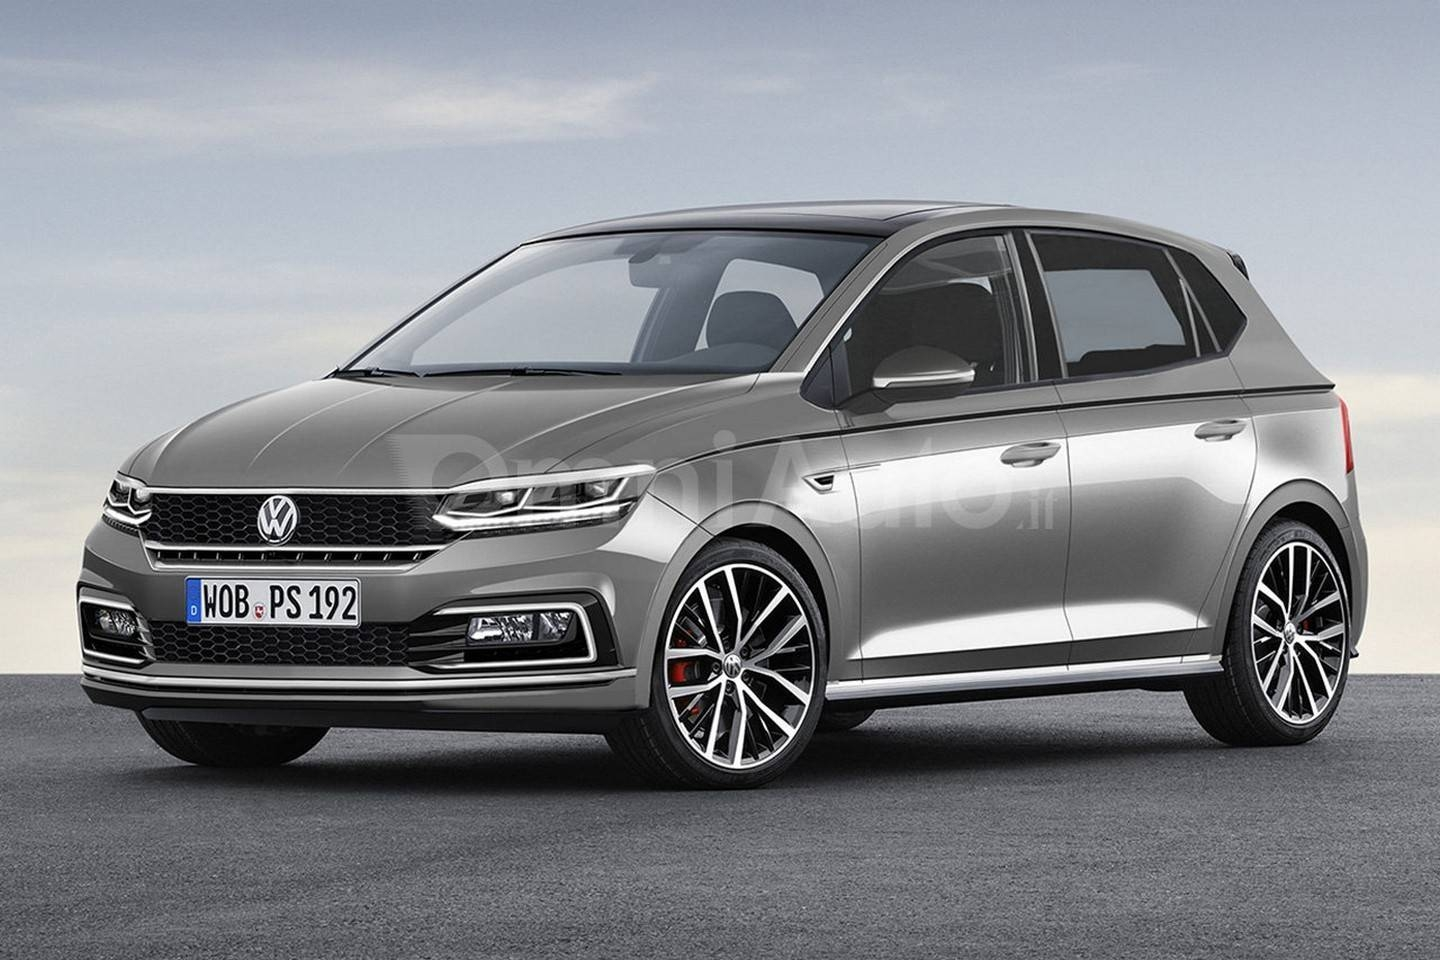 Design Un Graphiste Imagine La Future Volkswagen Polo